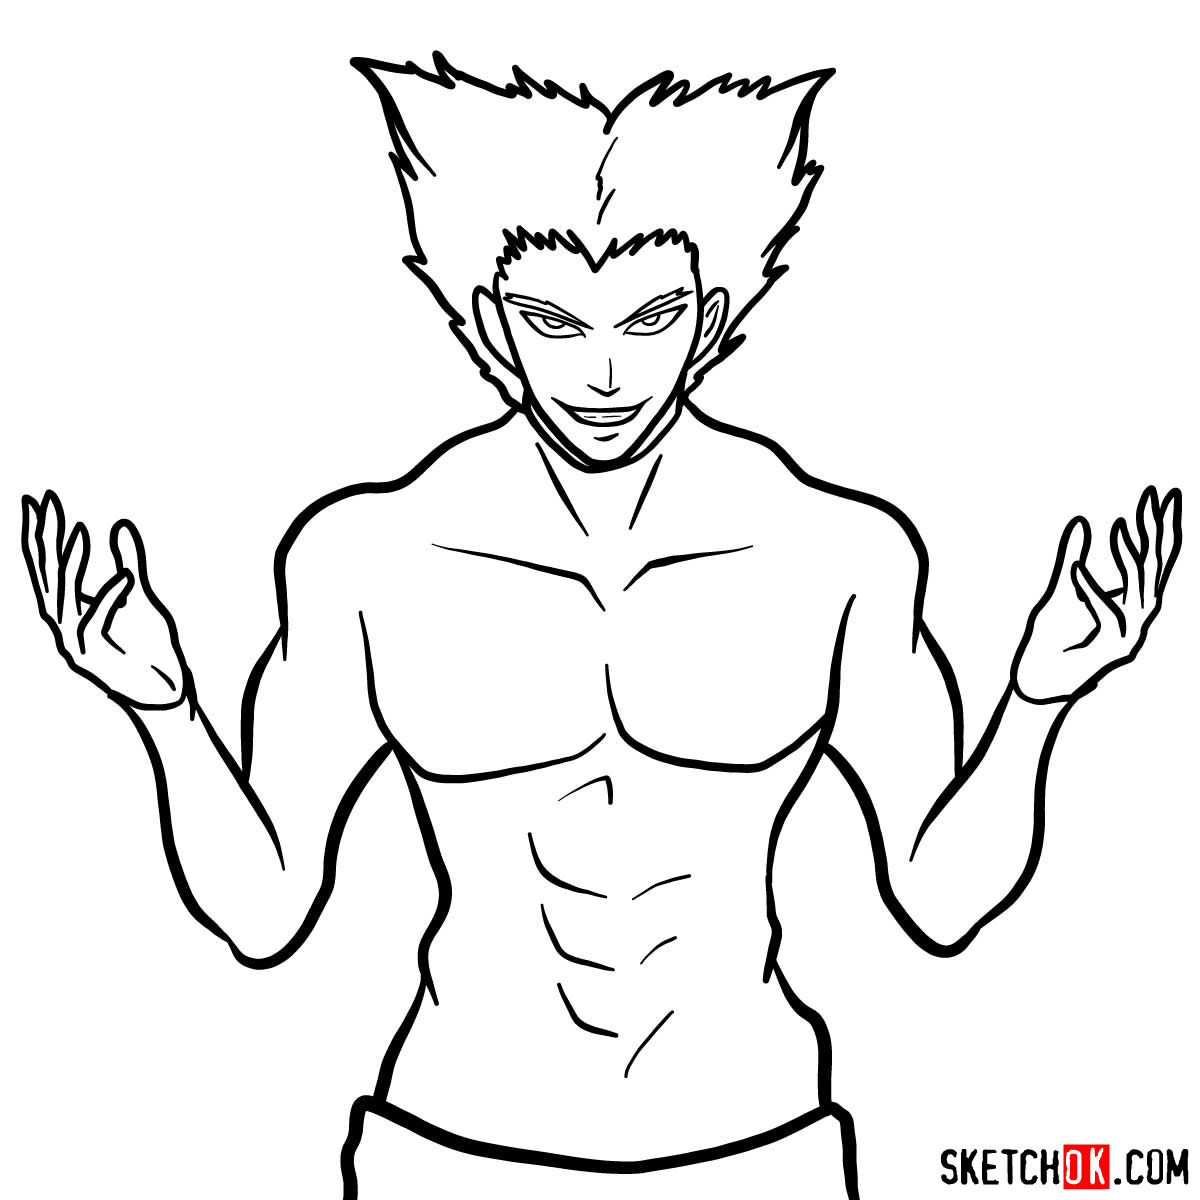 How to draw Garou | One-Punch Man